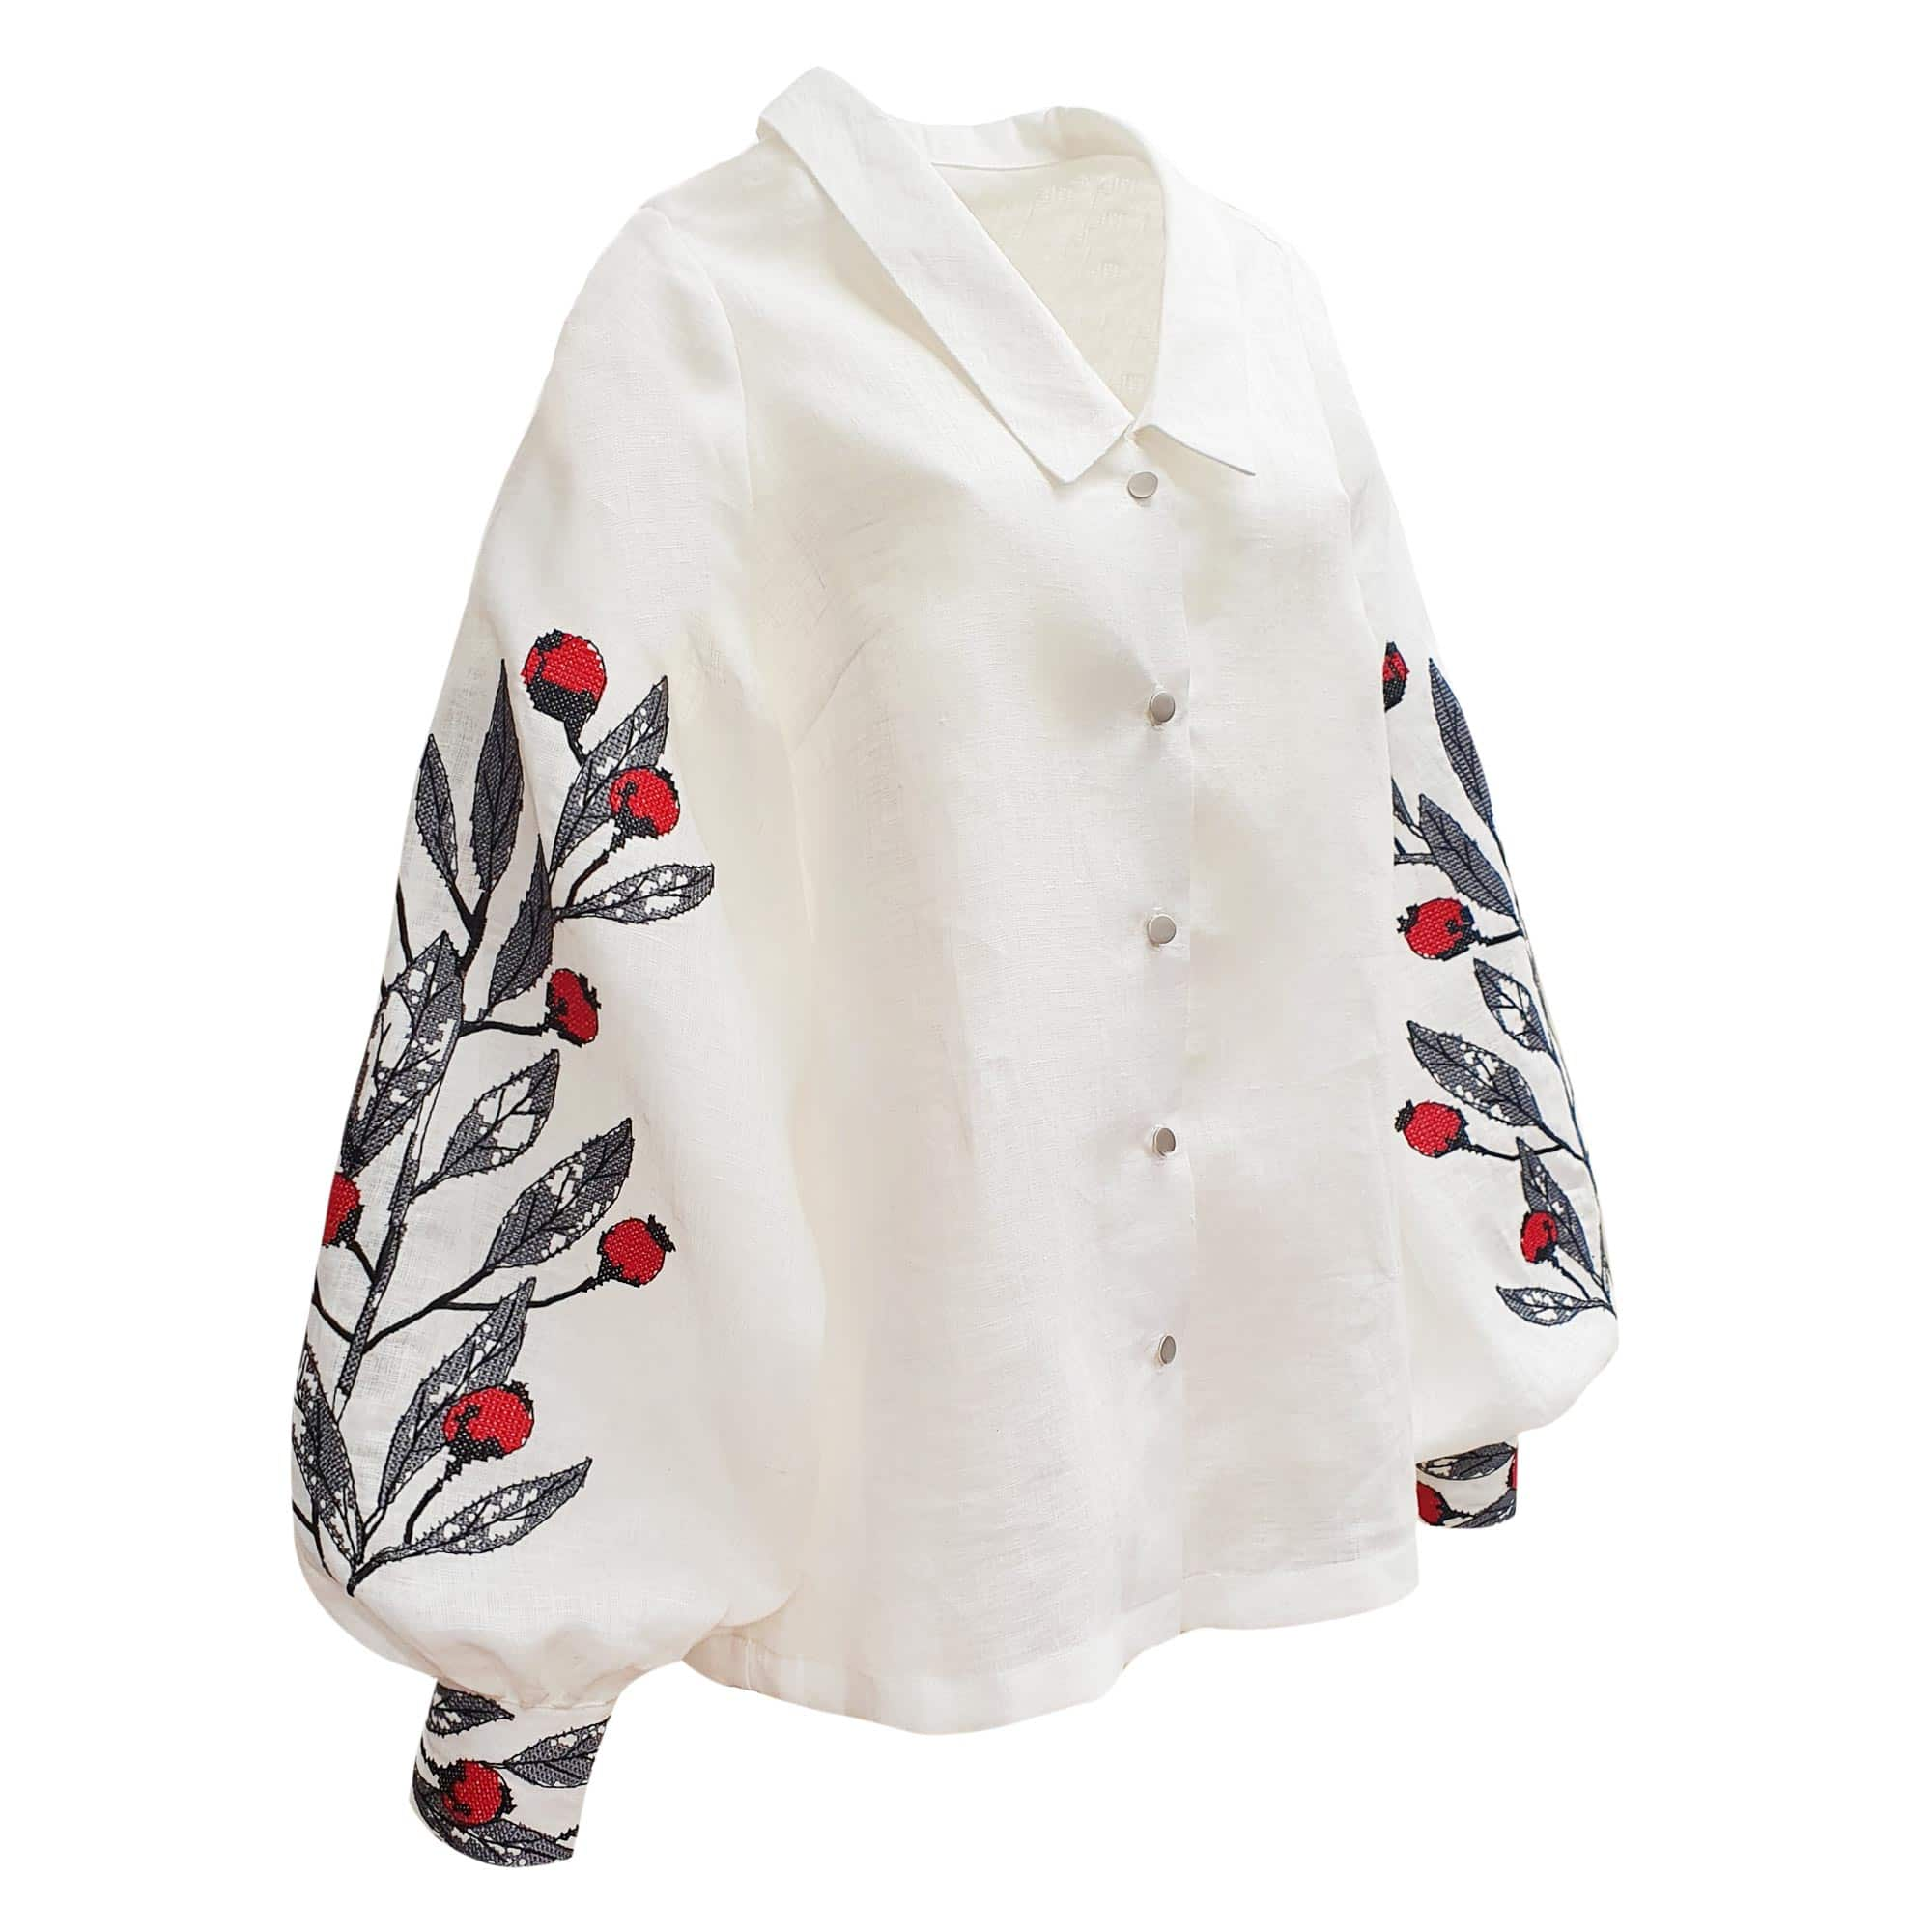 buy an embroidered shirt